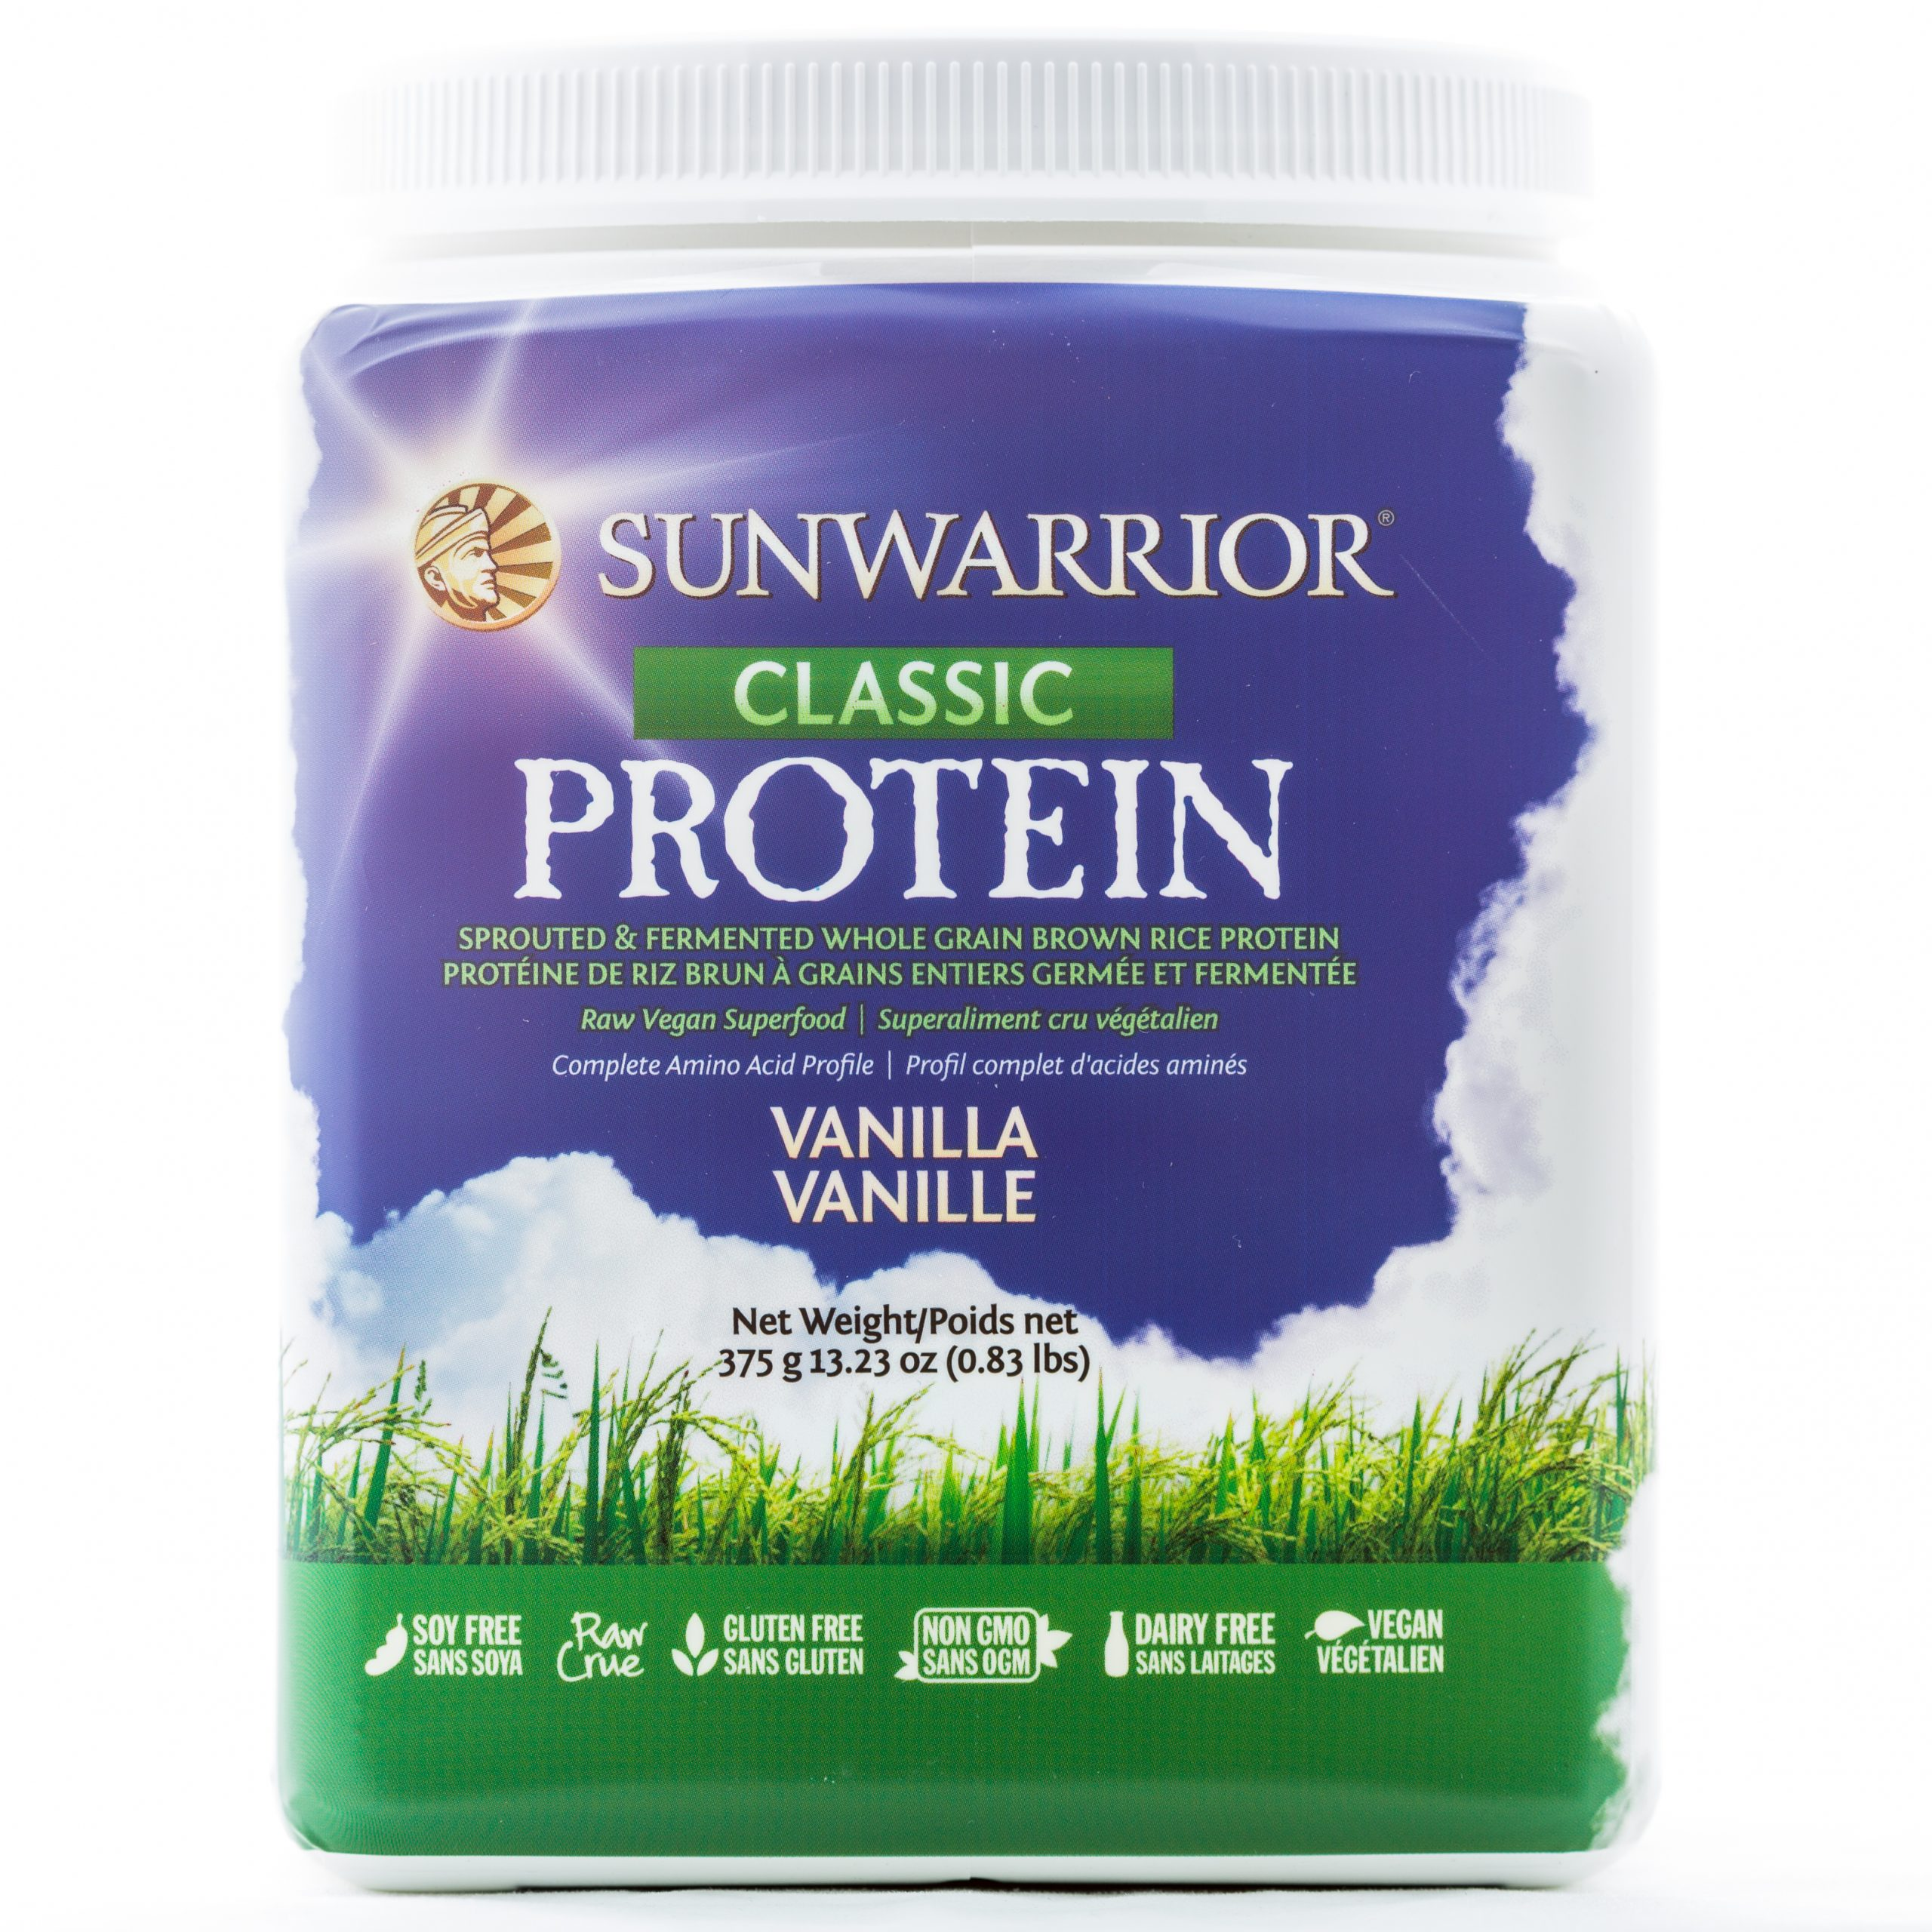 Sun Warrior Rice Protein Powder – Know about the powder